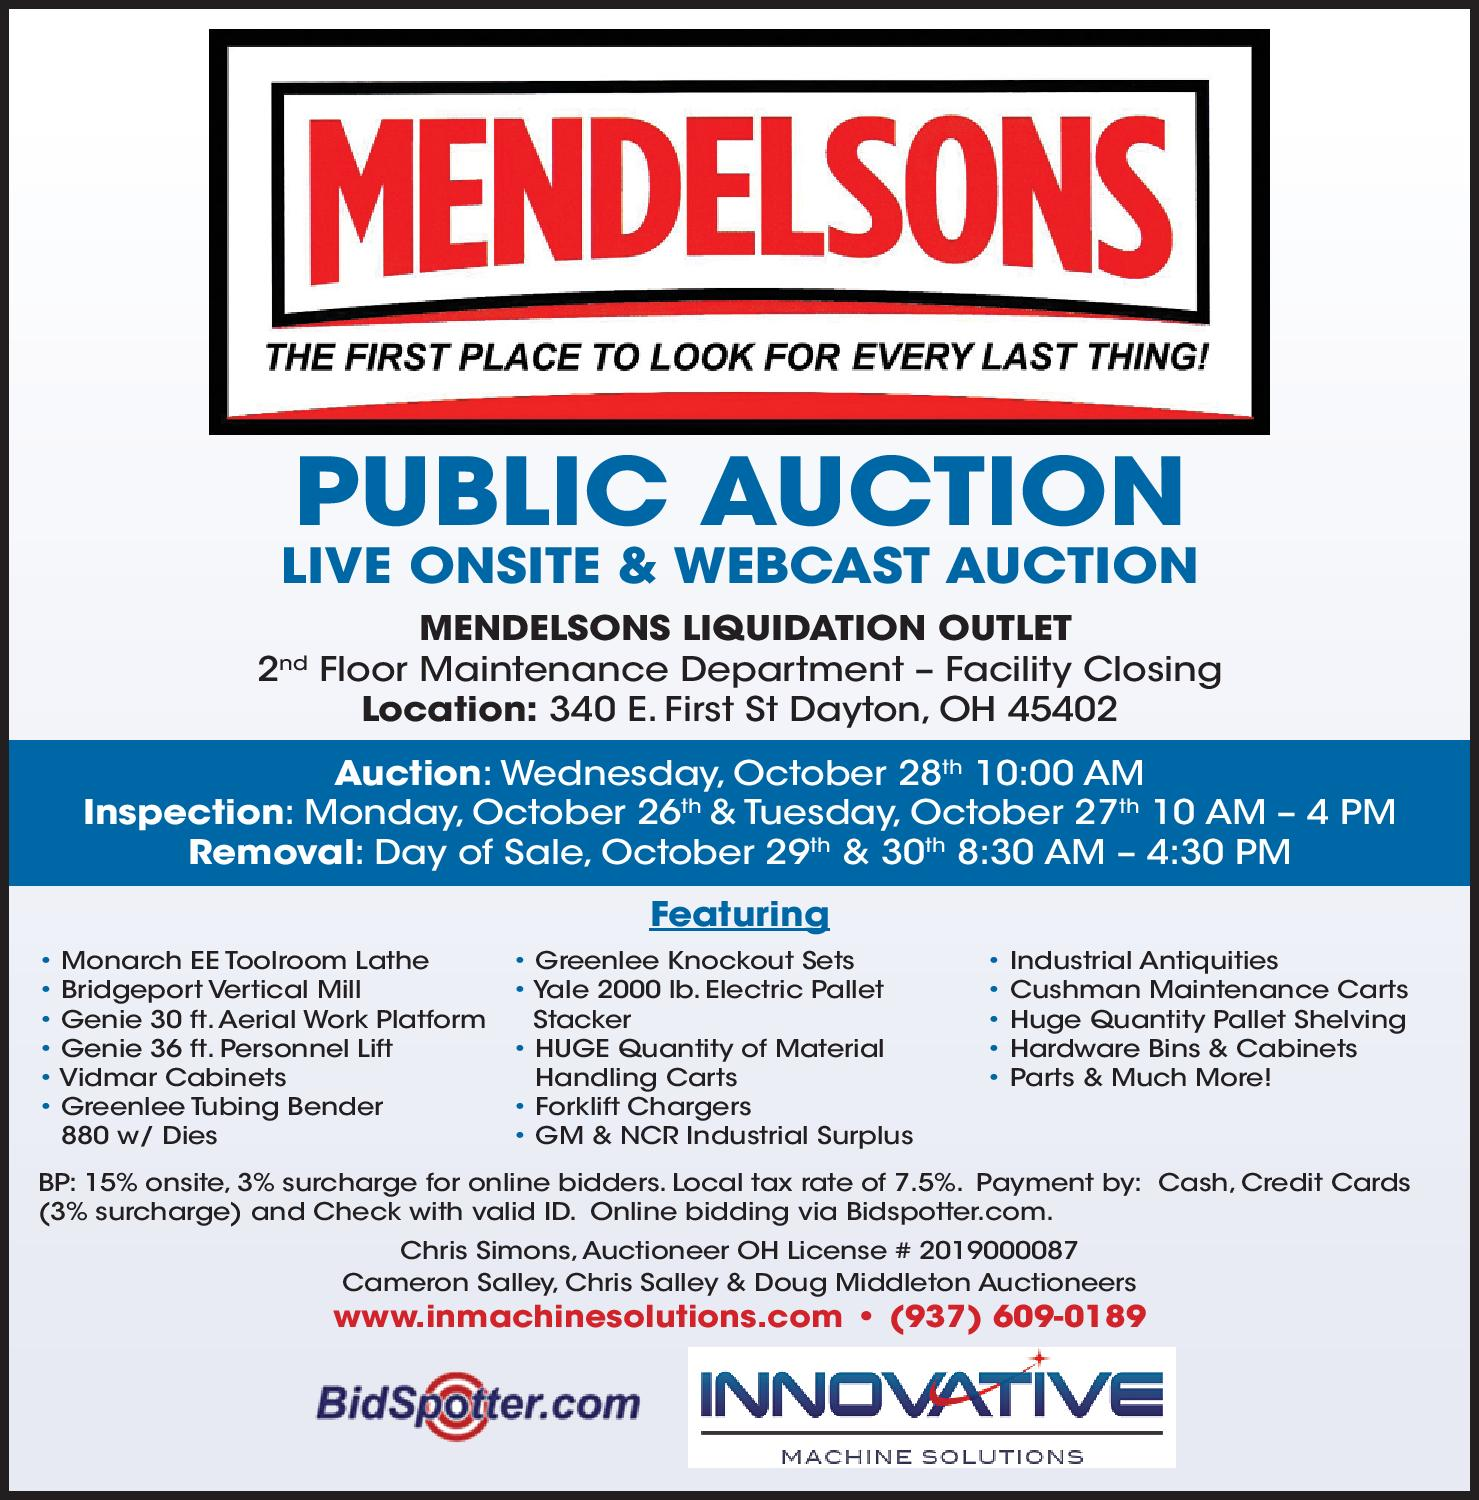 Mendelsons Auction